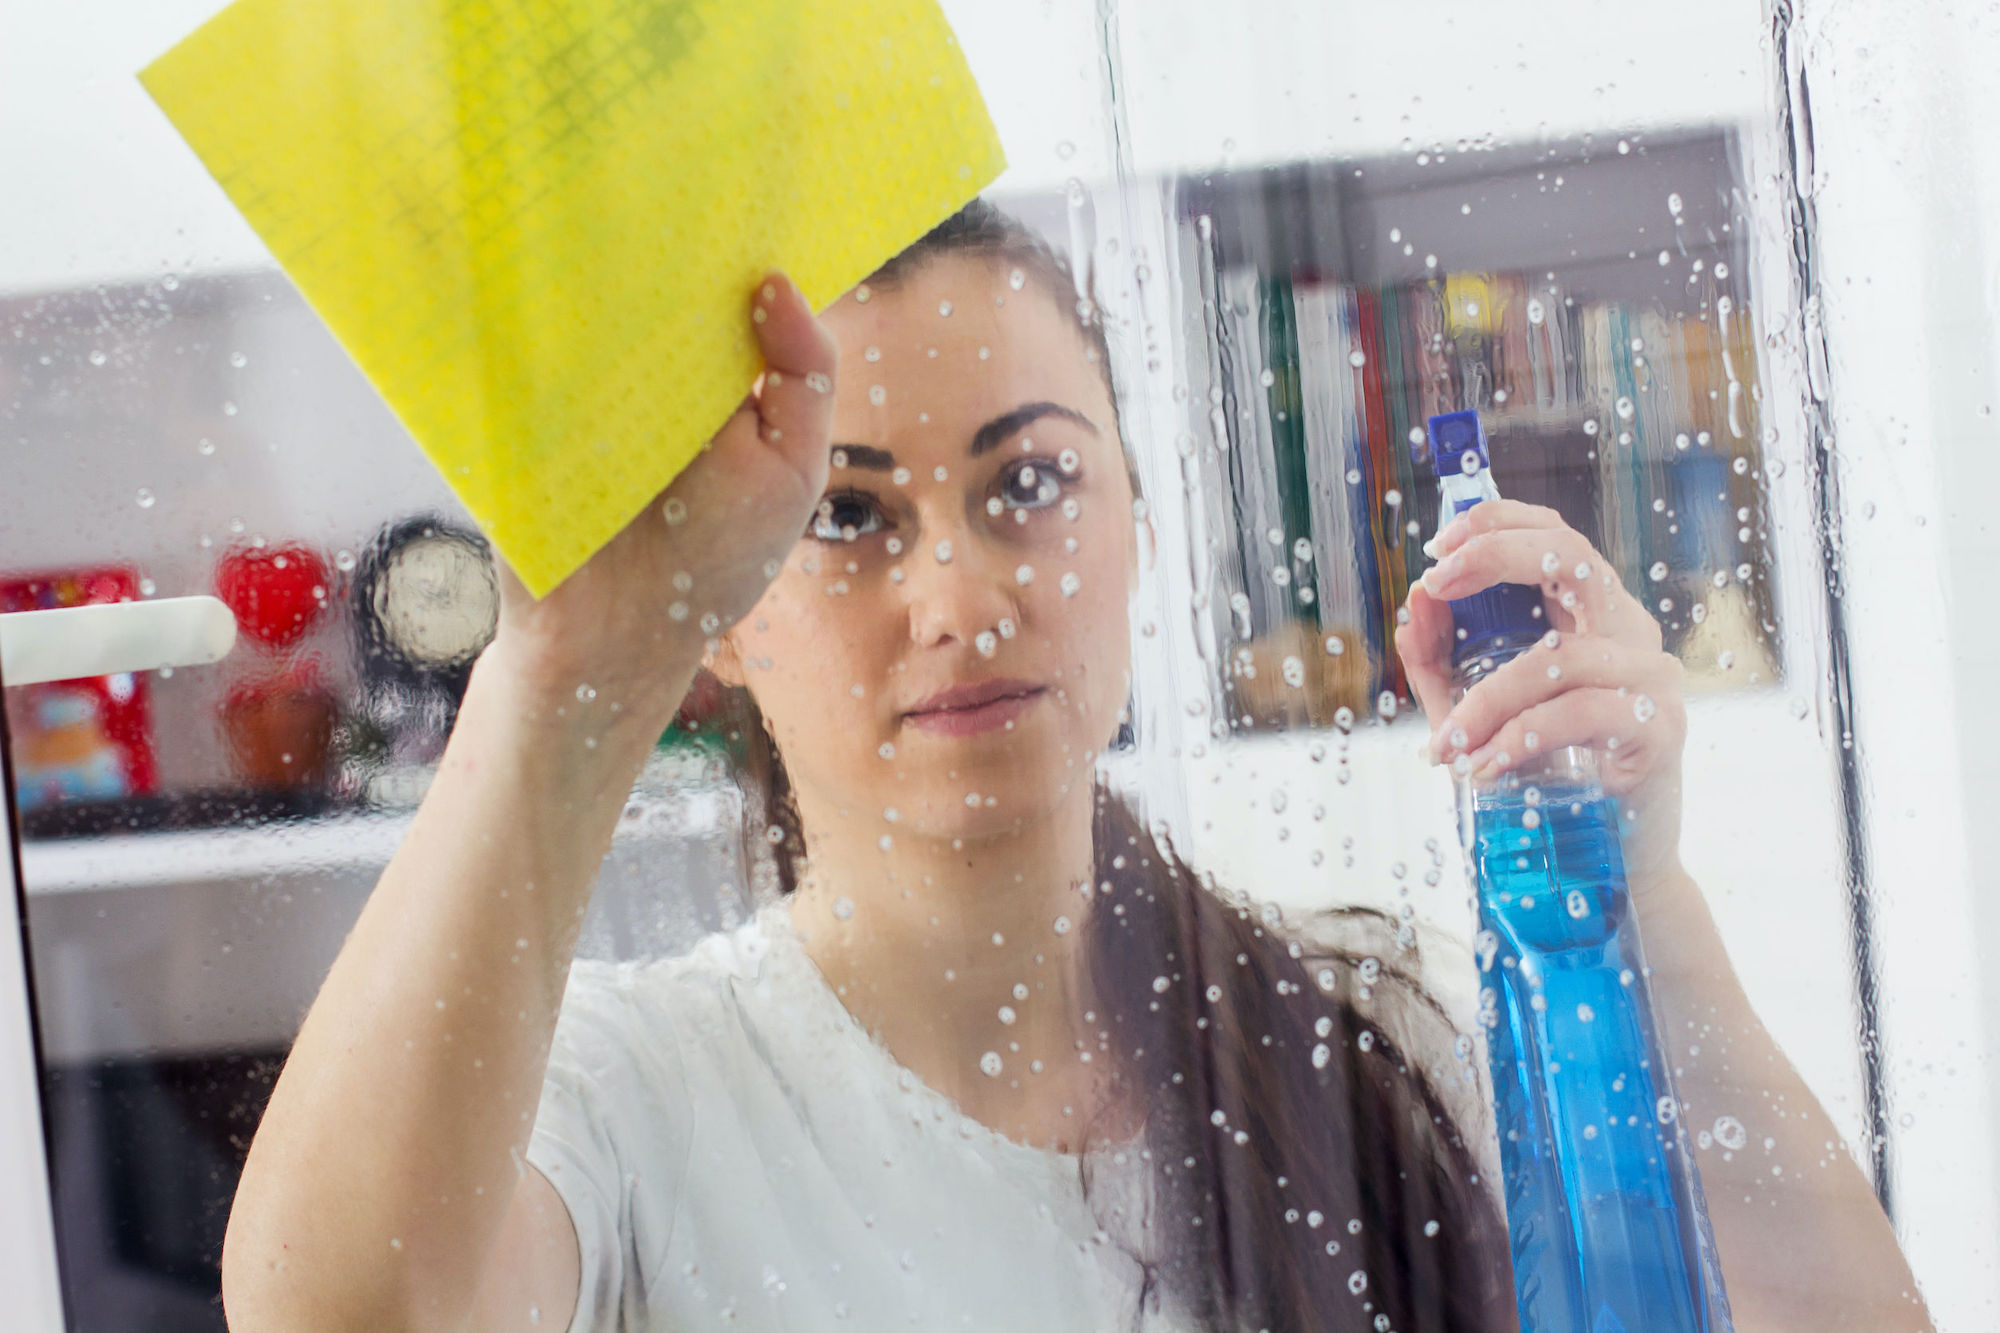 Household Chemicals and Toxic Chemicals in Products - header and featured